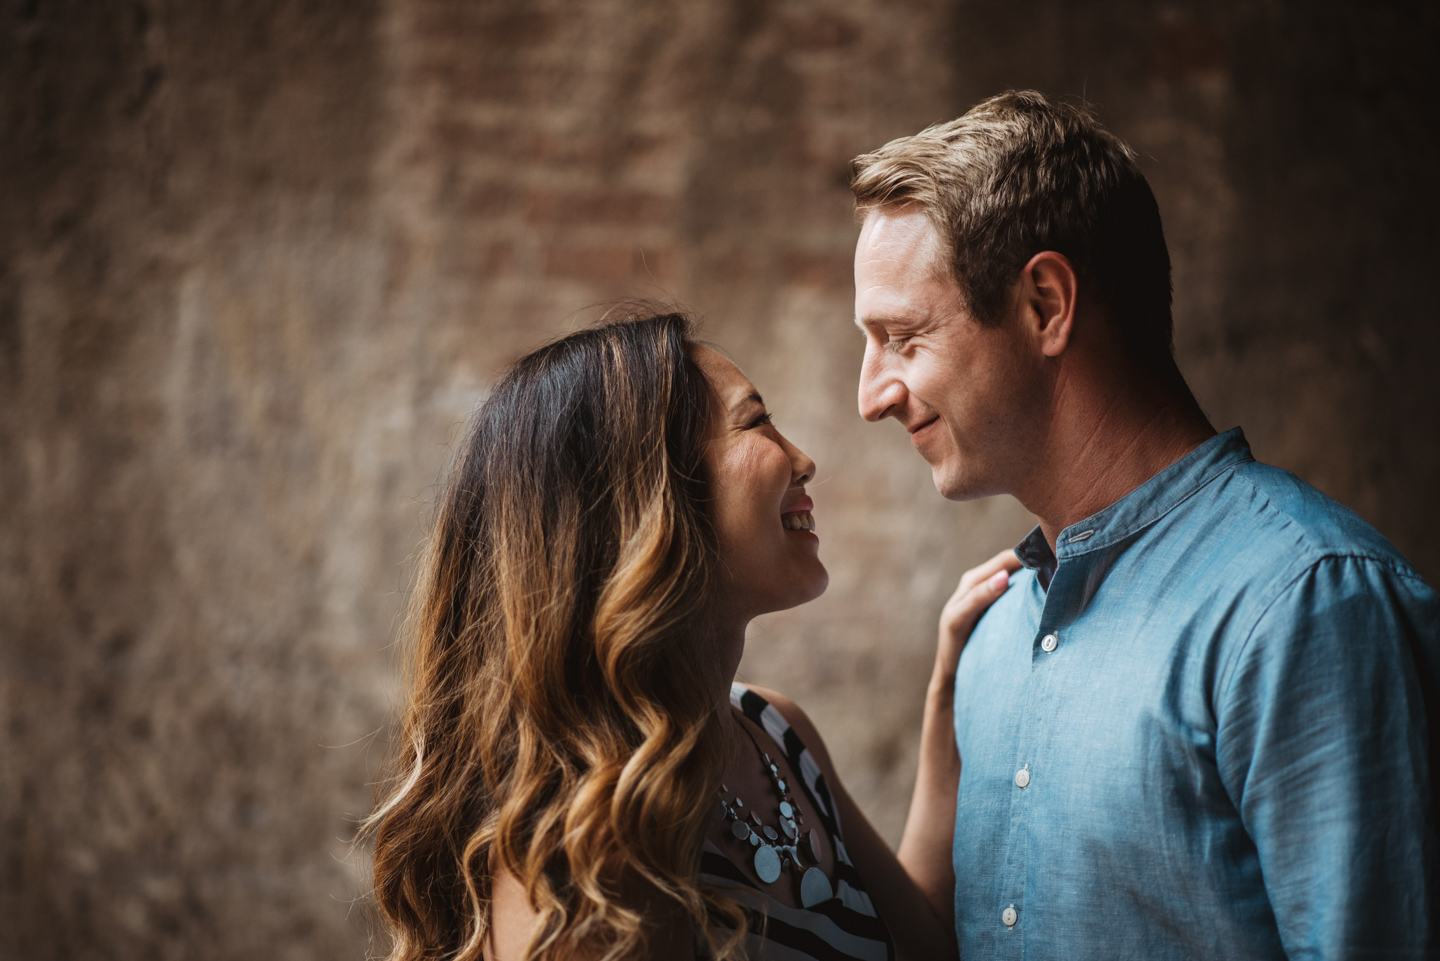 Engagement Session in Siena Tuscany, Marco Vegni Photographer